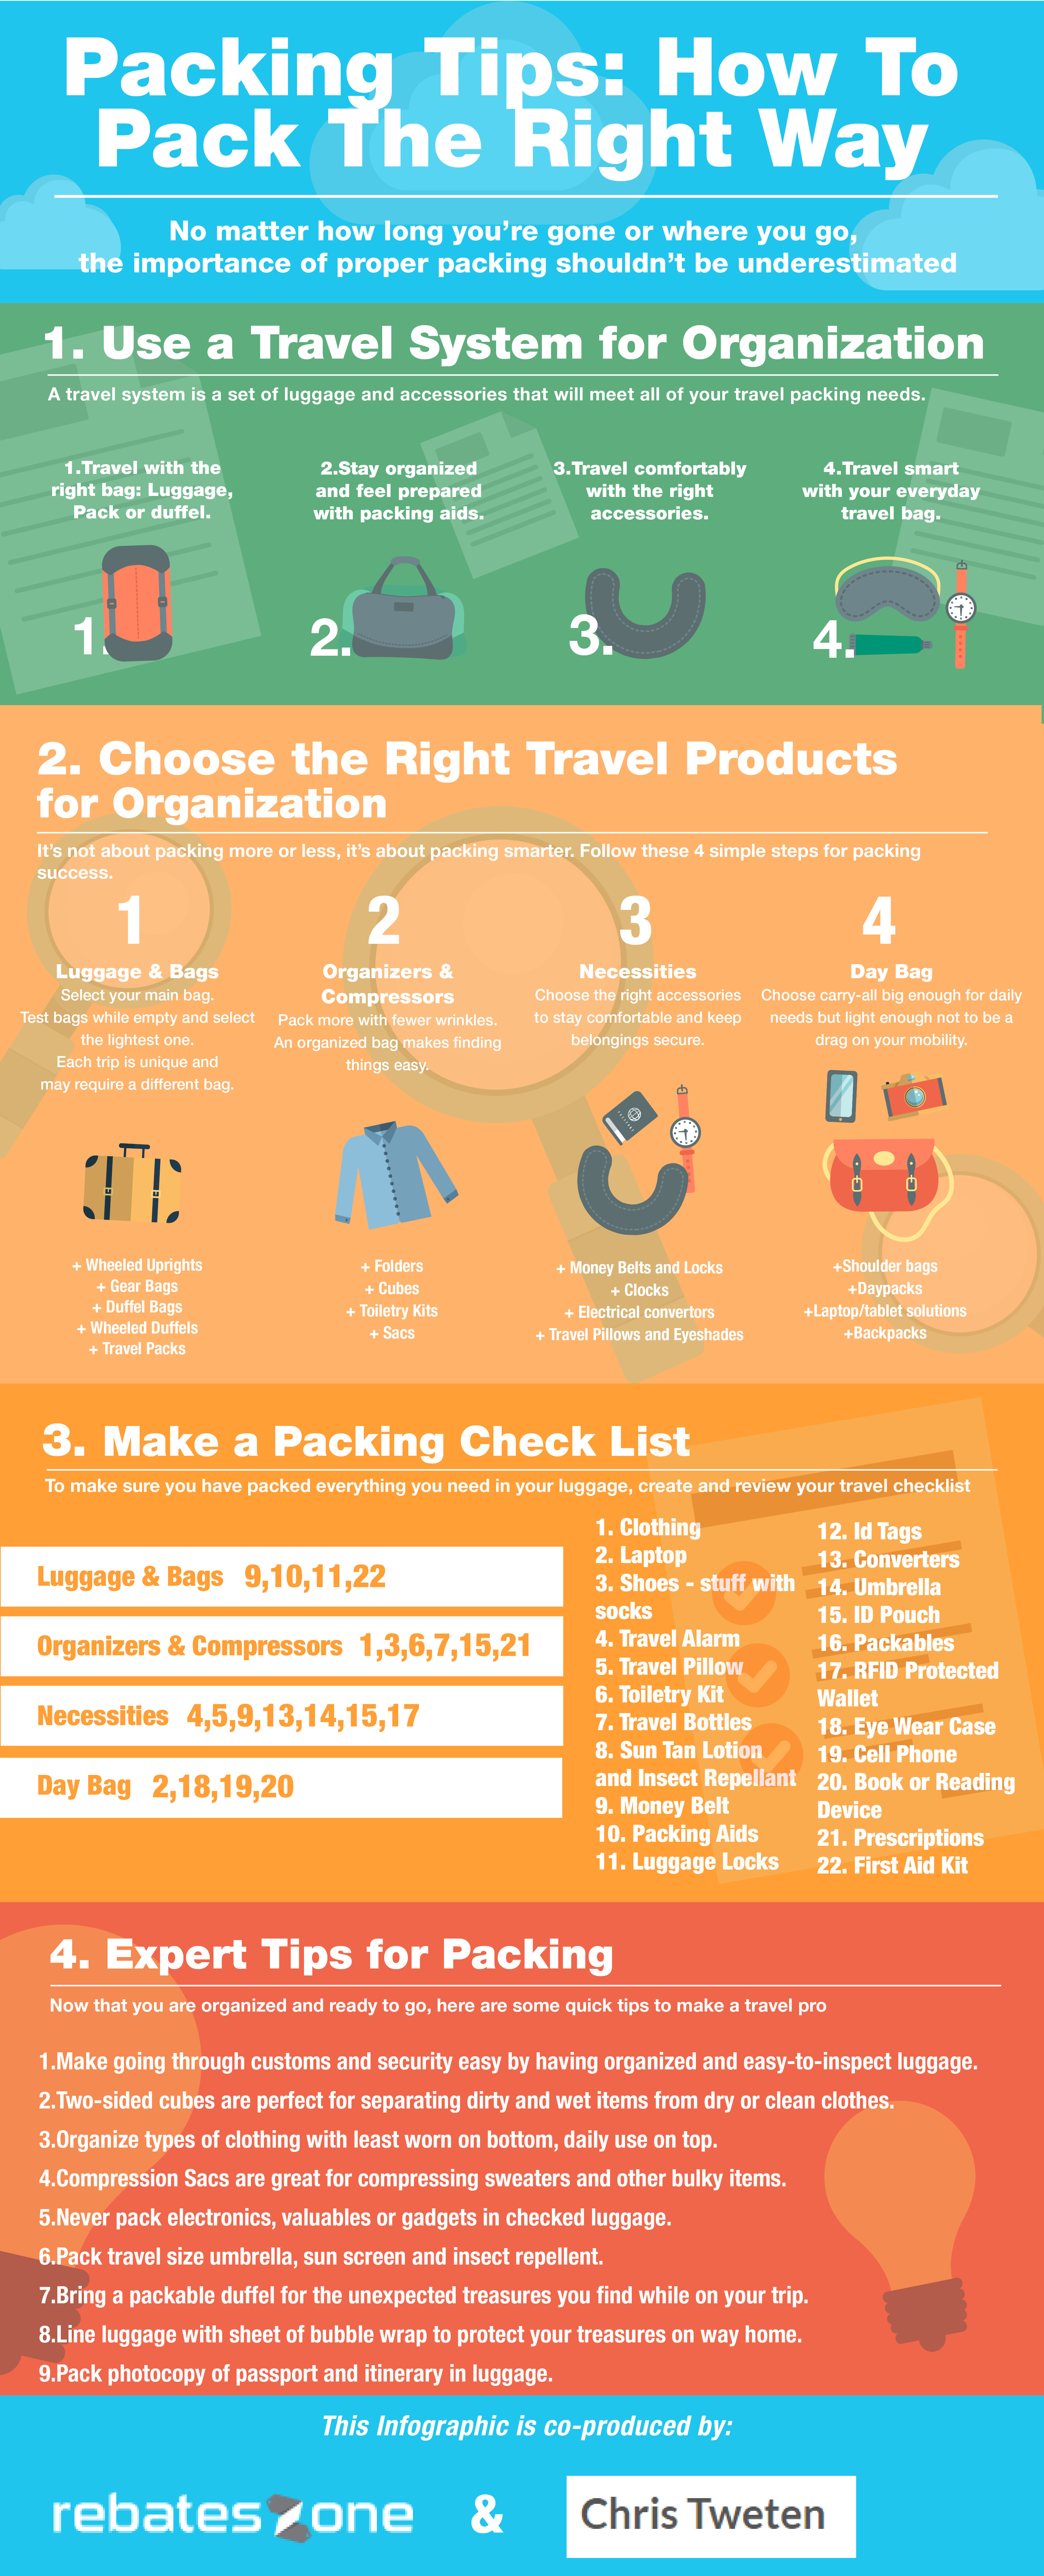 Easily the best packing tips infographic.